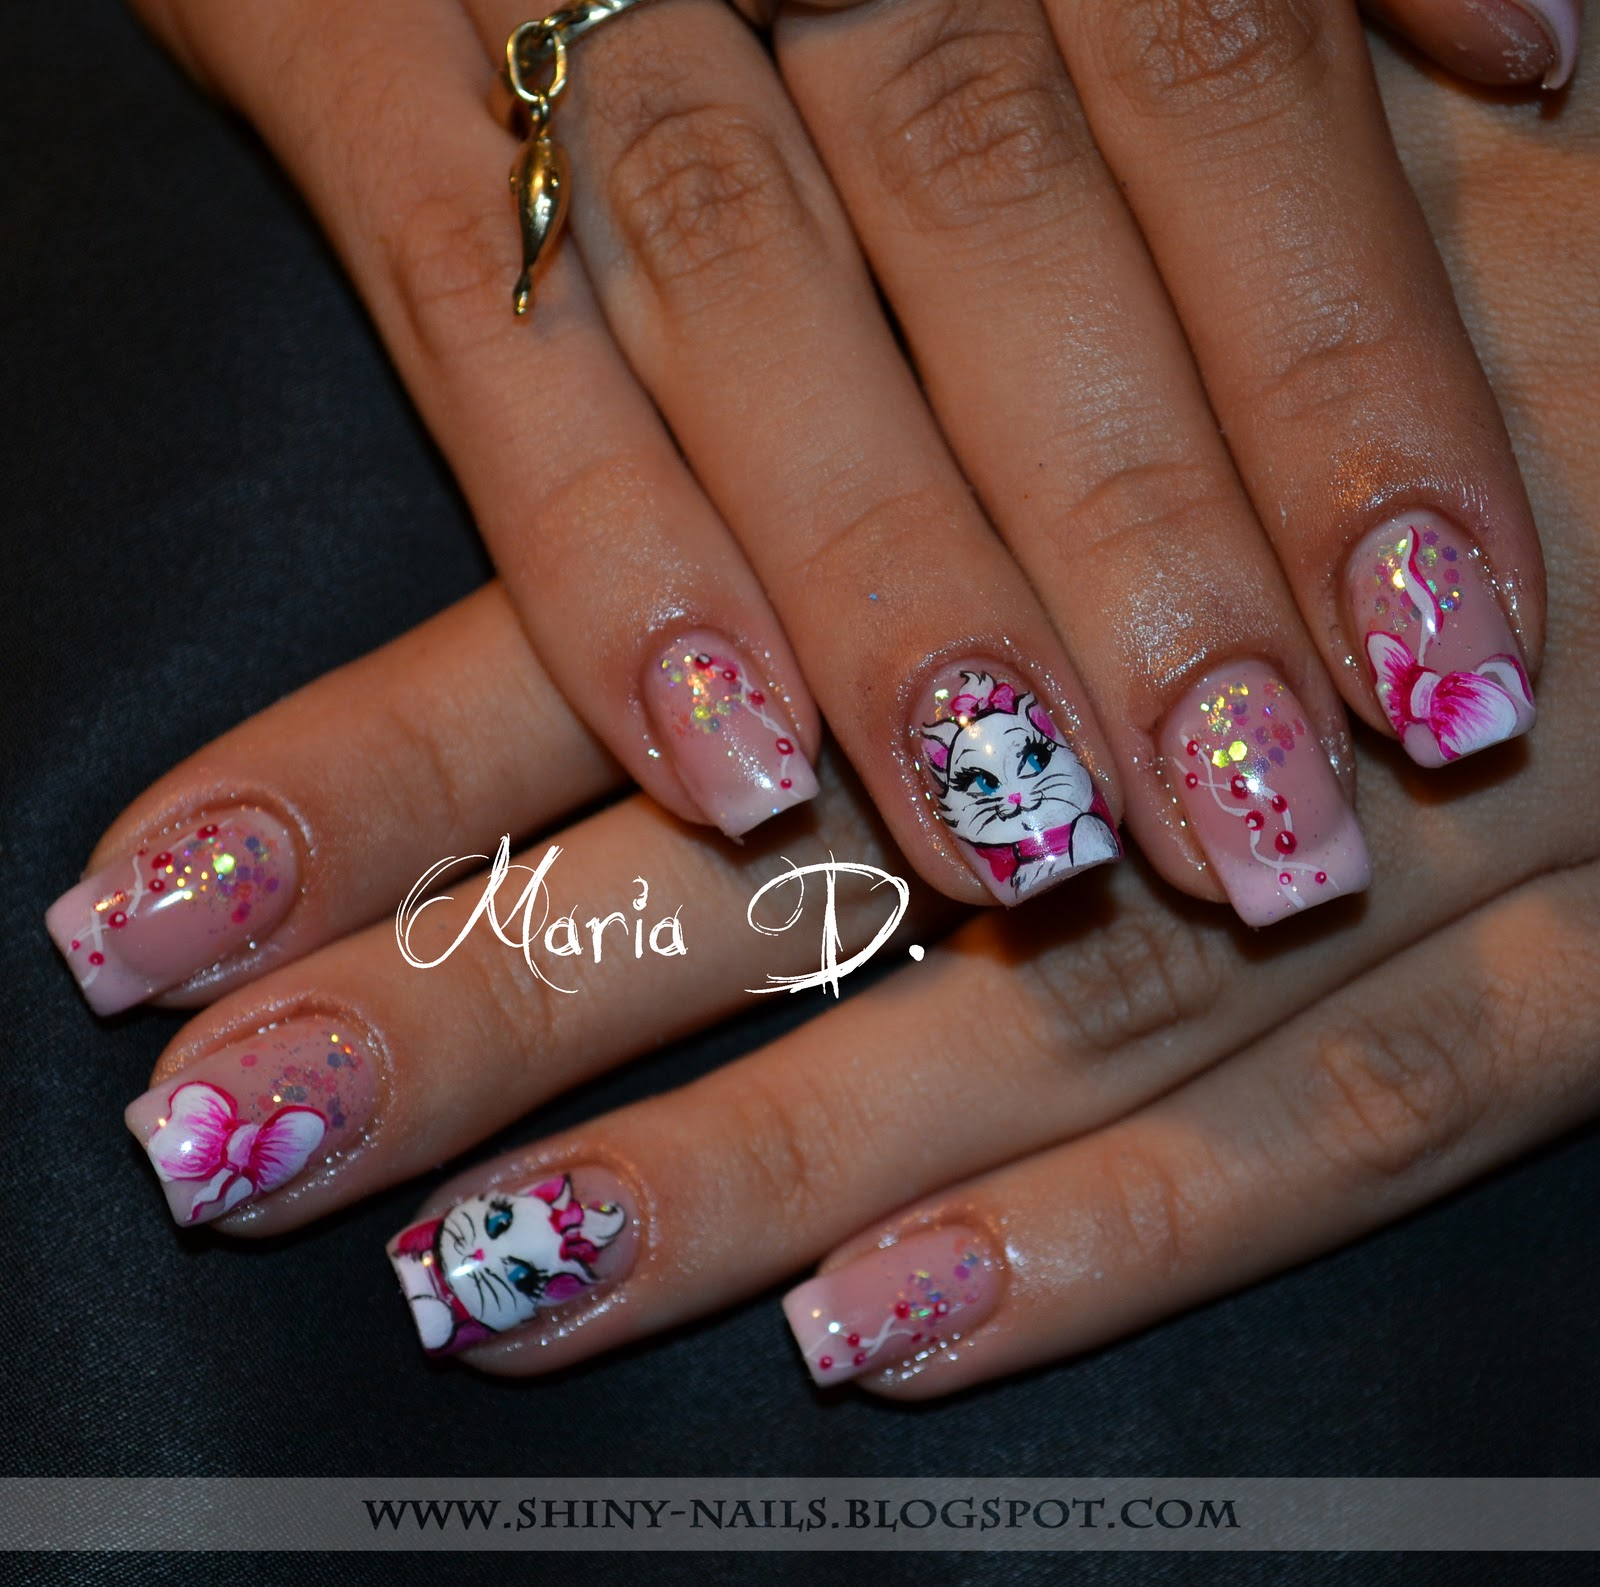 Shiny-Nails by Maria D.: octombrie 2011